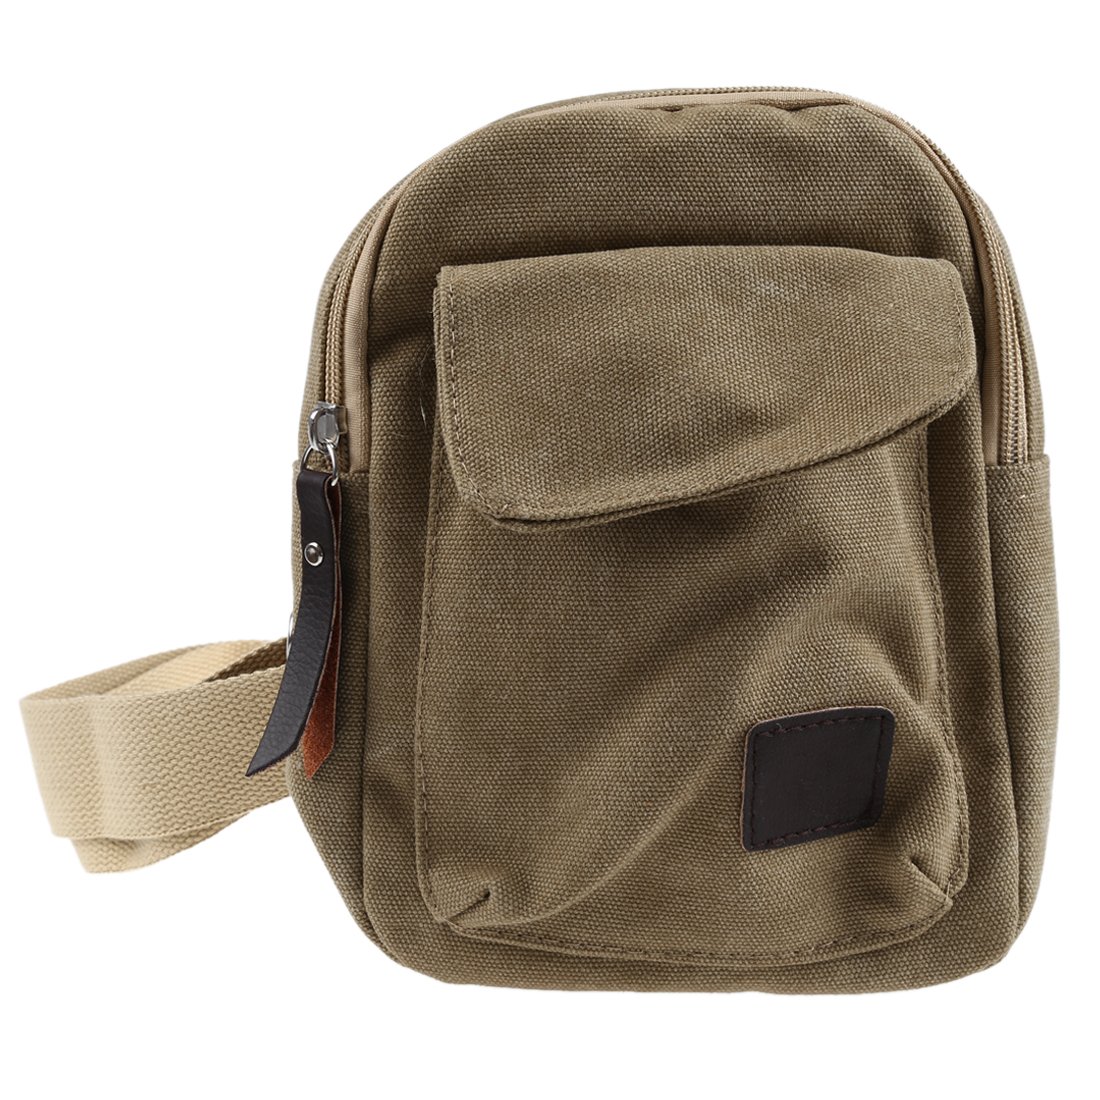 And Good Quality PU Casual Small Canvas Vintage Shoulder Crossbody Bicycle Bag Messager Bags-Khaki